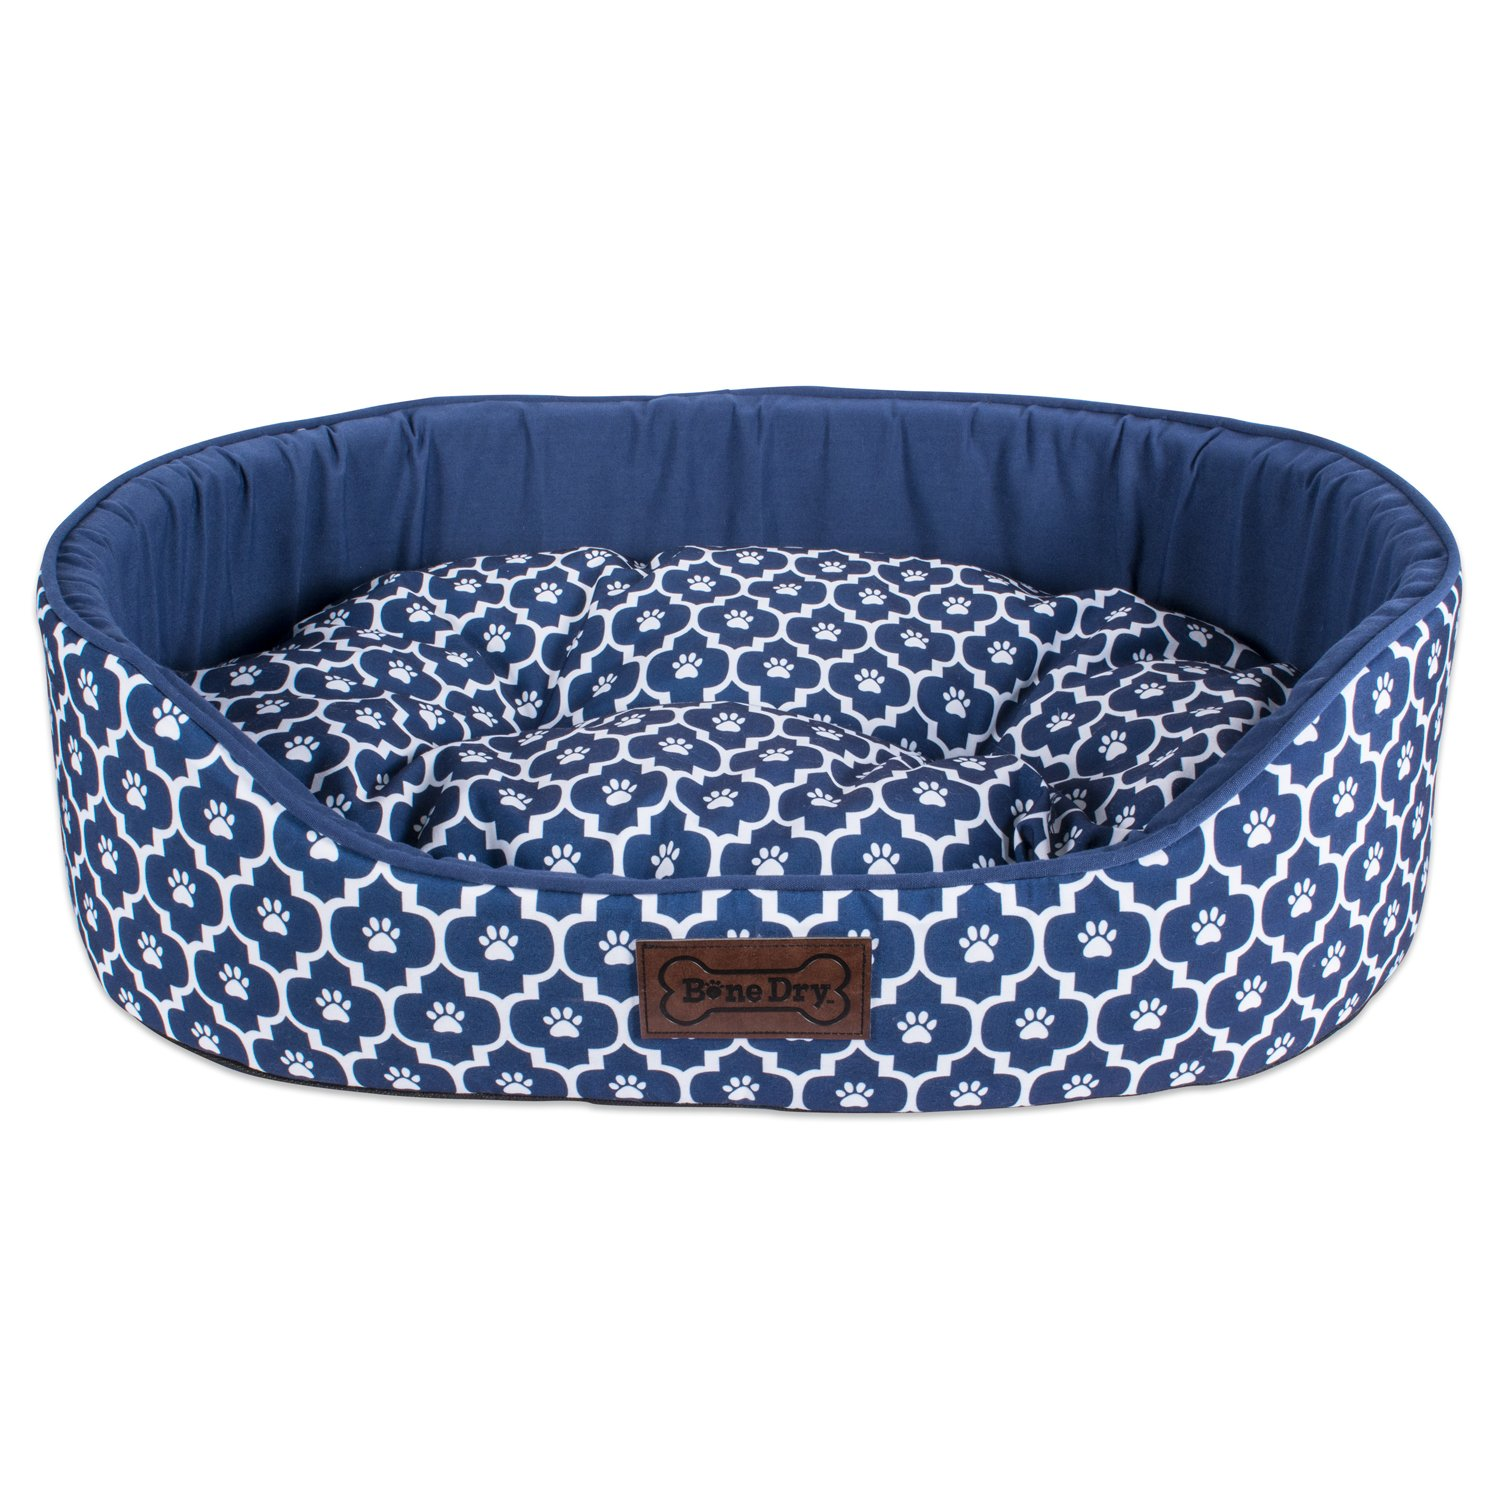 DII Bone Dry Lattice Pet Bed, 27x36x10'', Modern & Fashionable Large Oval Bed For Dogs Or Cats-Navy